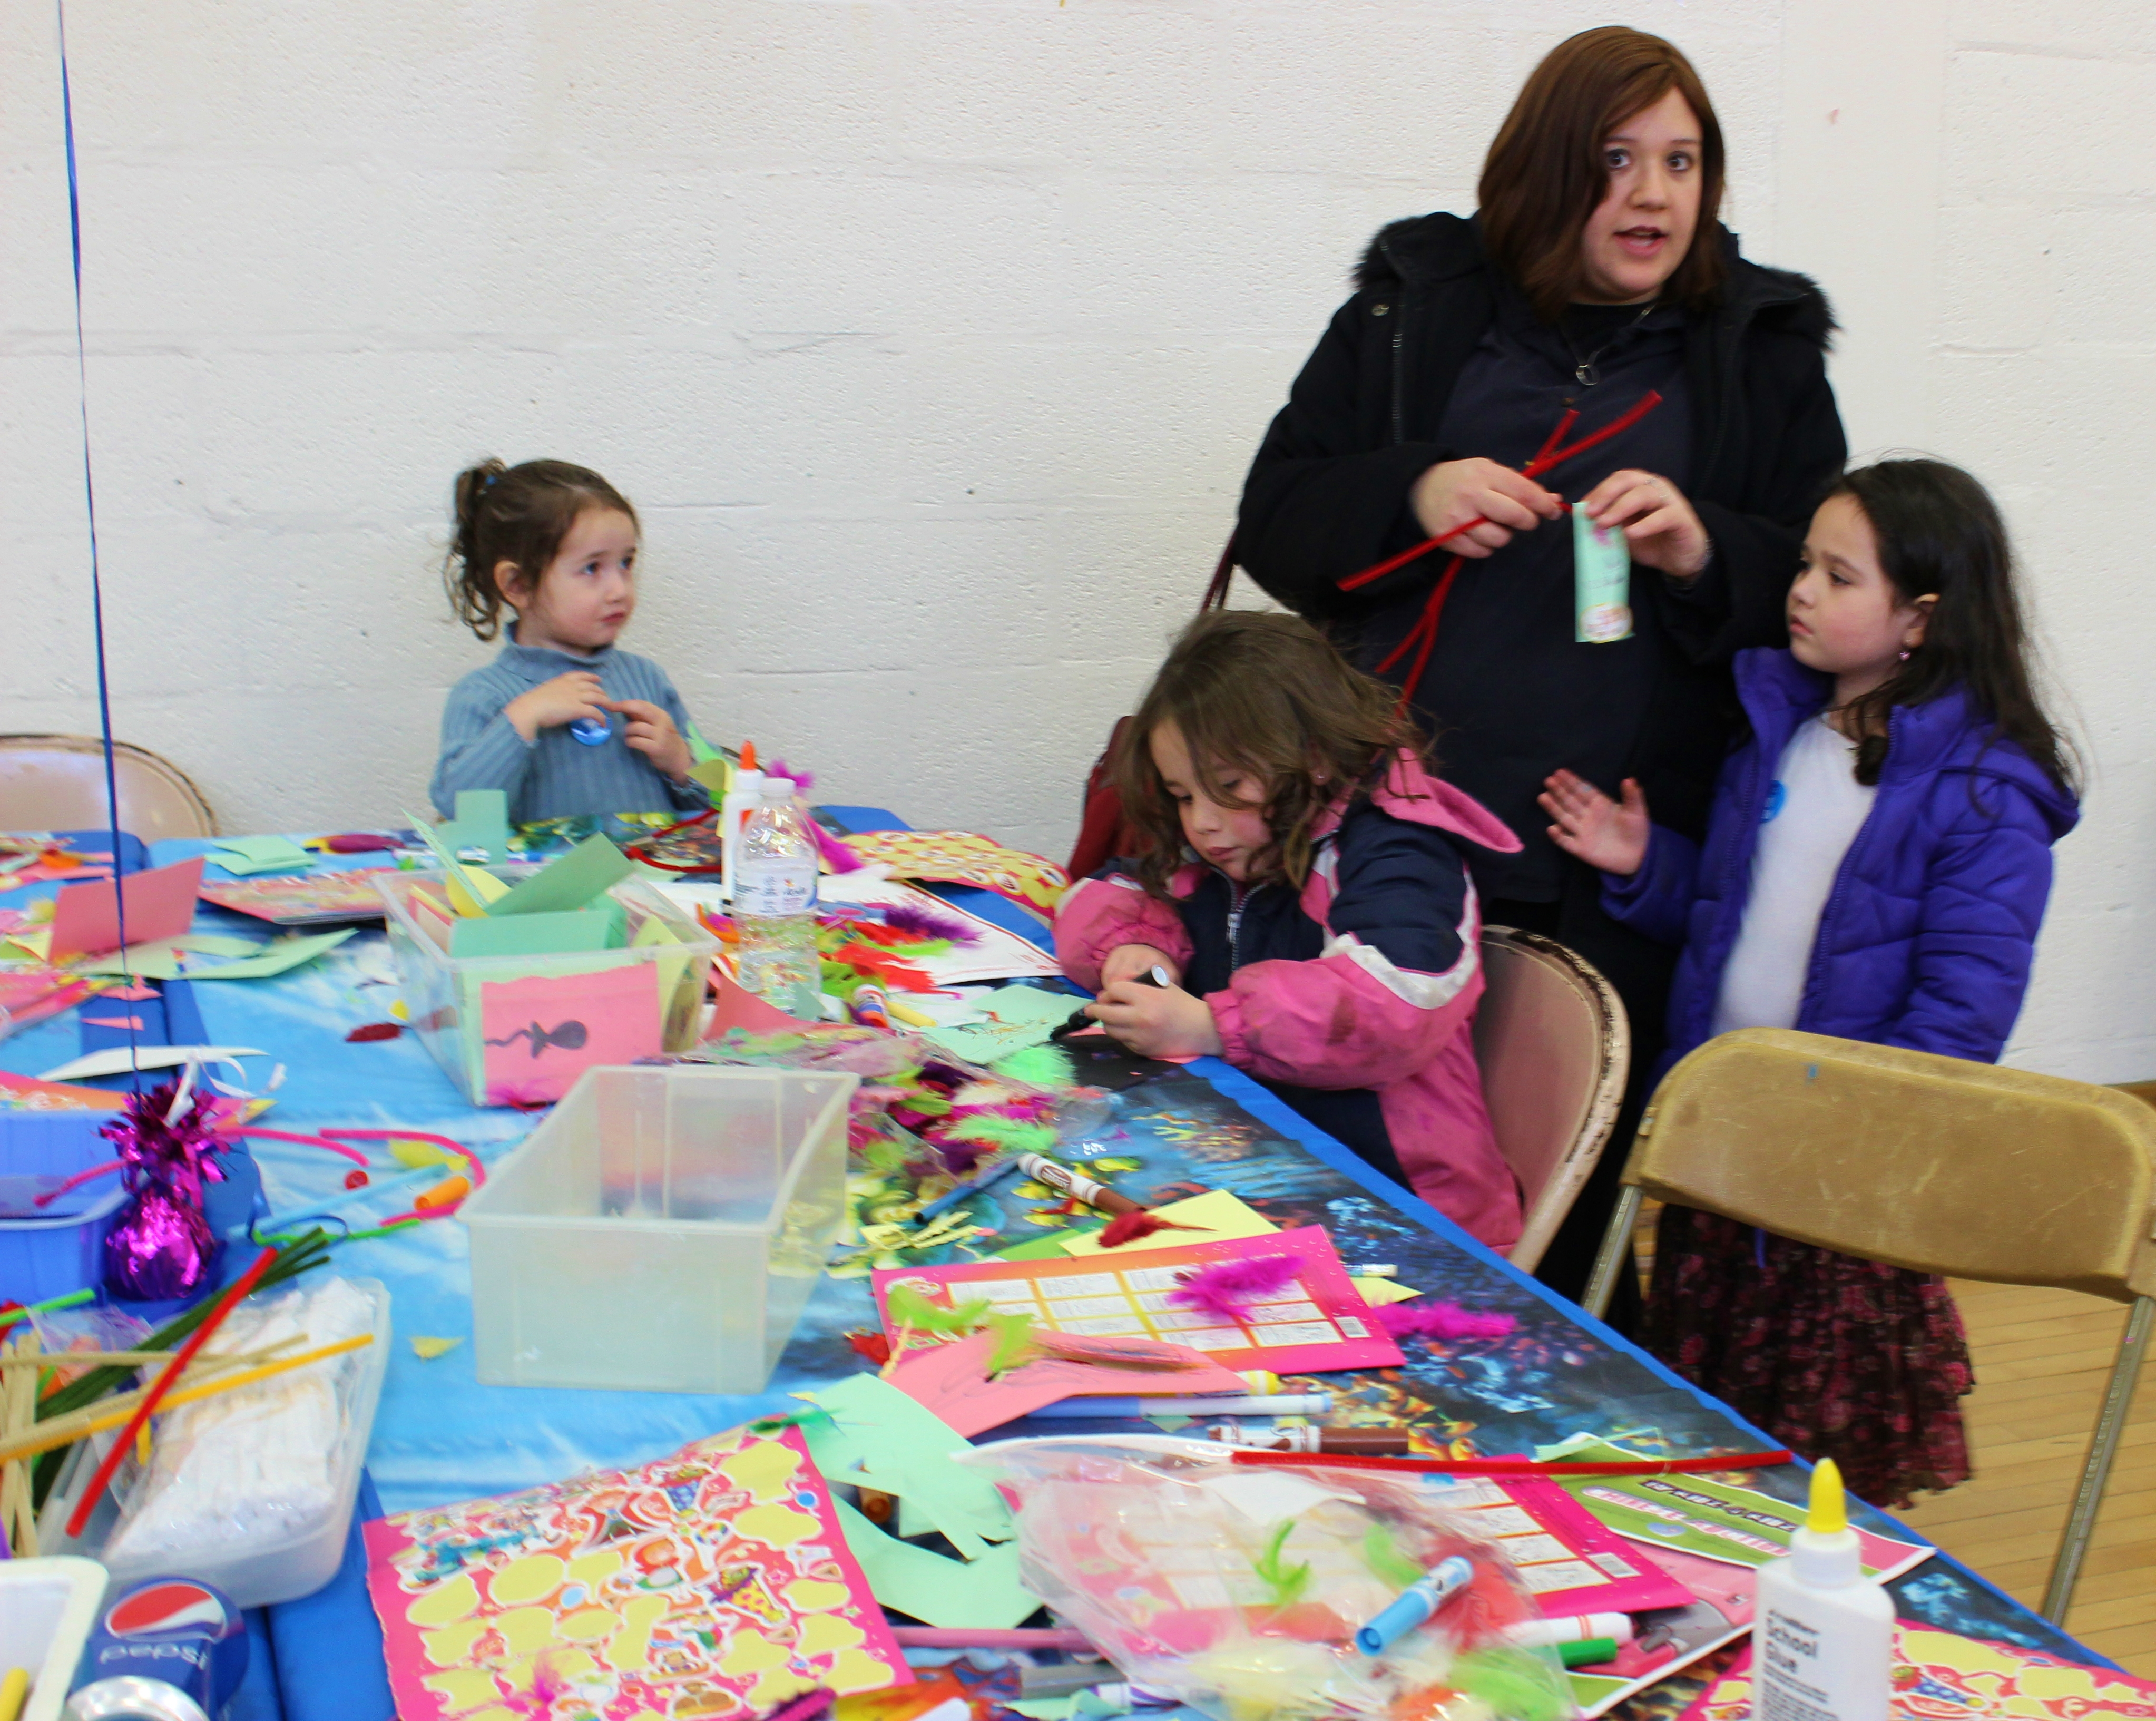 At the crafts table